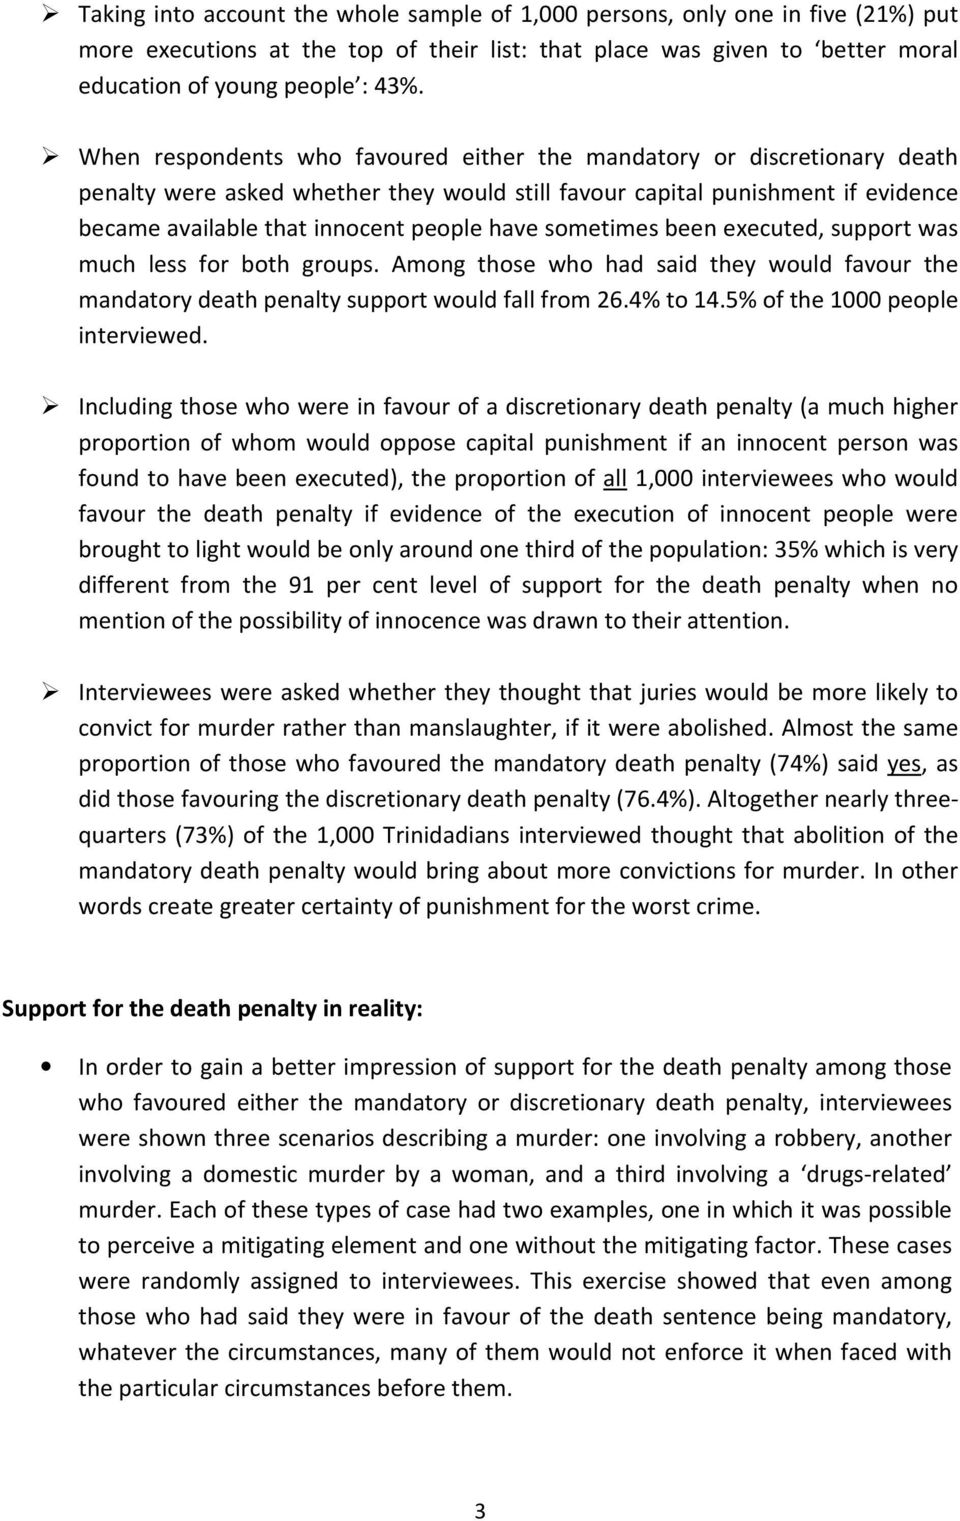 sometimes been executed, support was much less for both groups. Among those who had said they would favour the mandatory death penalty support would fall from 26.4% to 14.